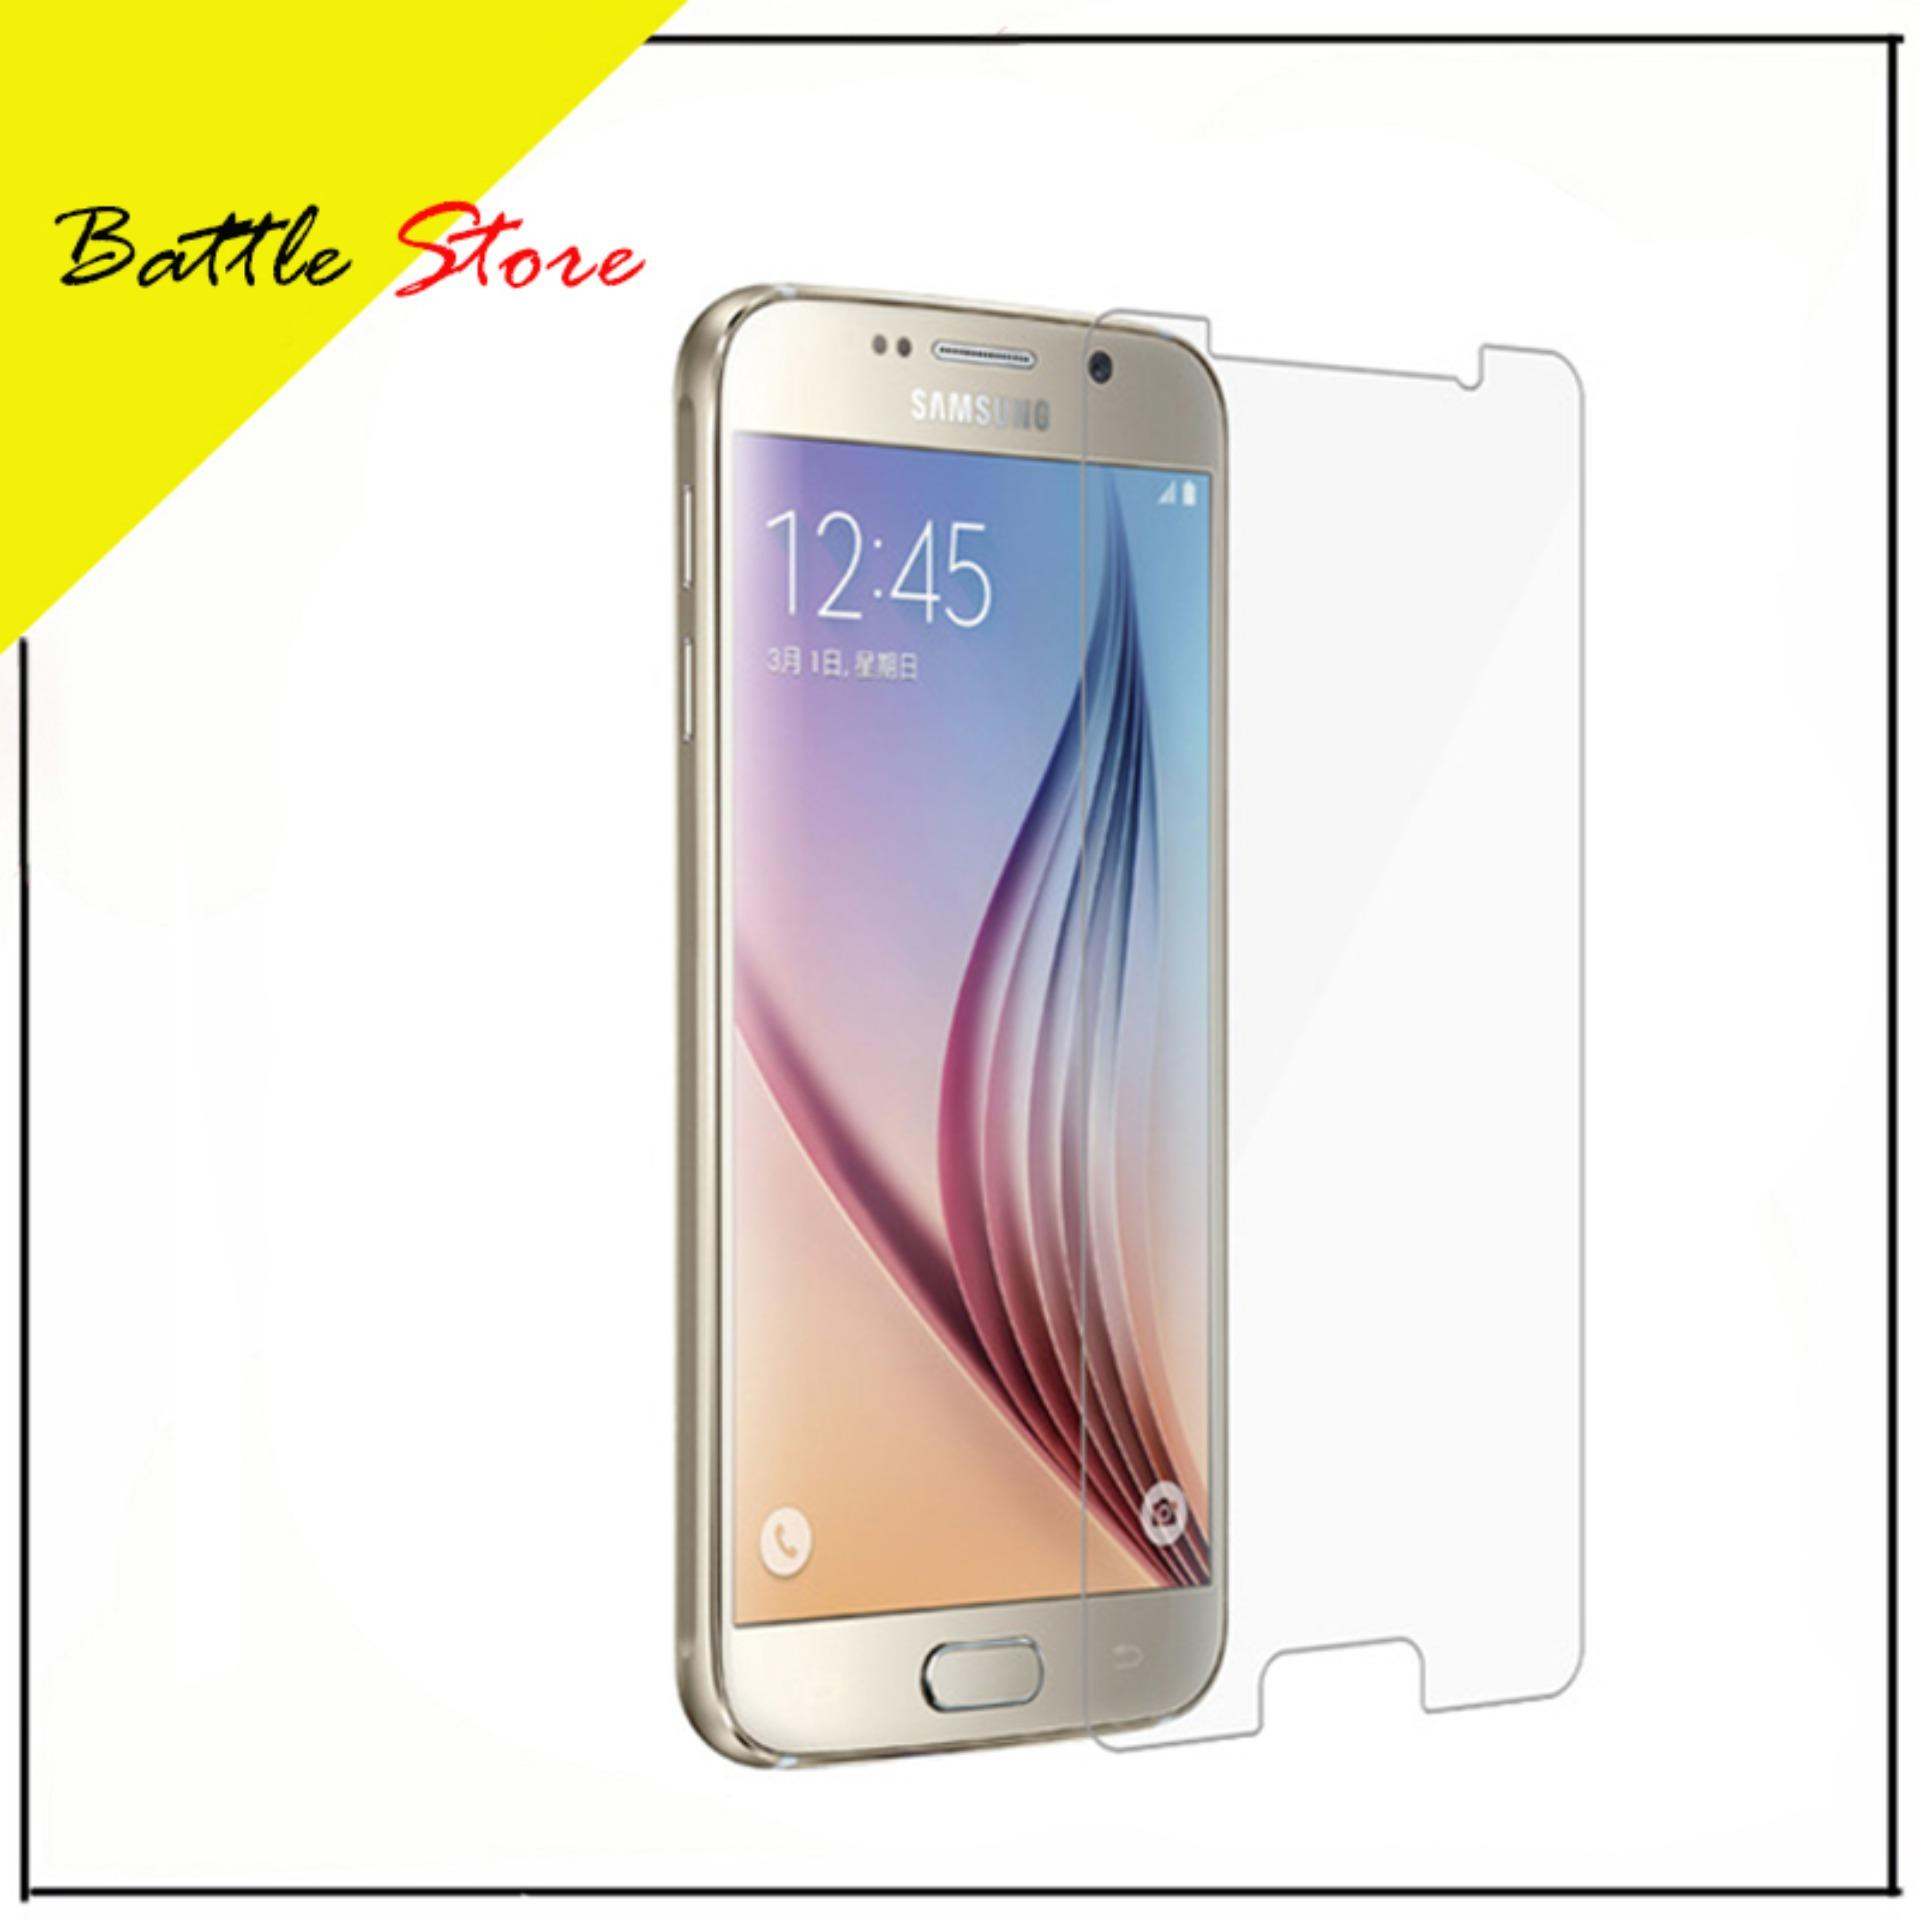 Samsung Galaxy S6 Flat Premium Smile Screen Protector Tempered Glass / Anti Gores Kaca - White